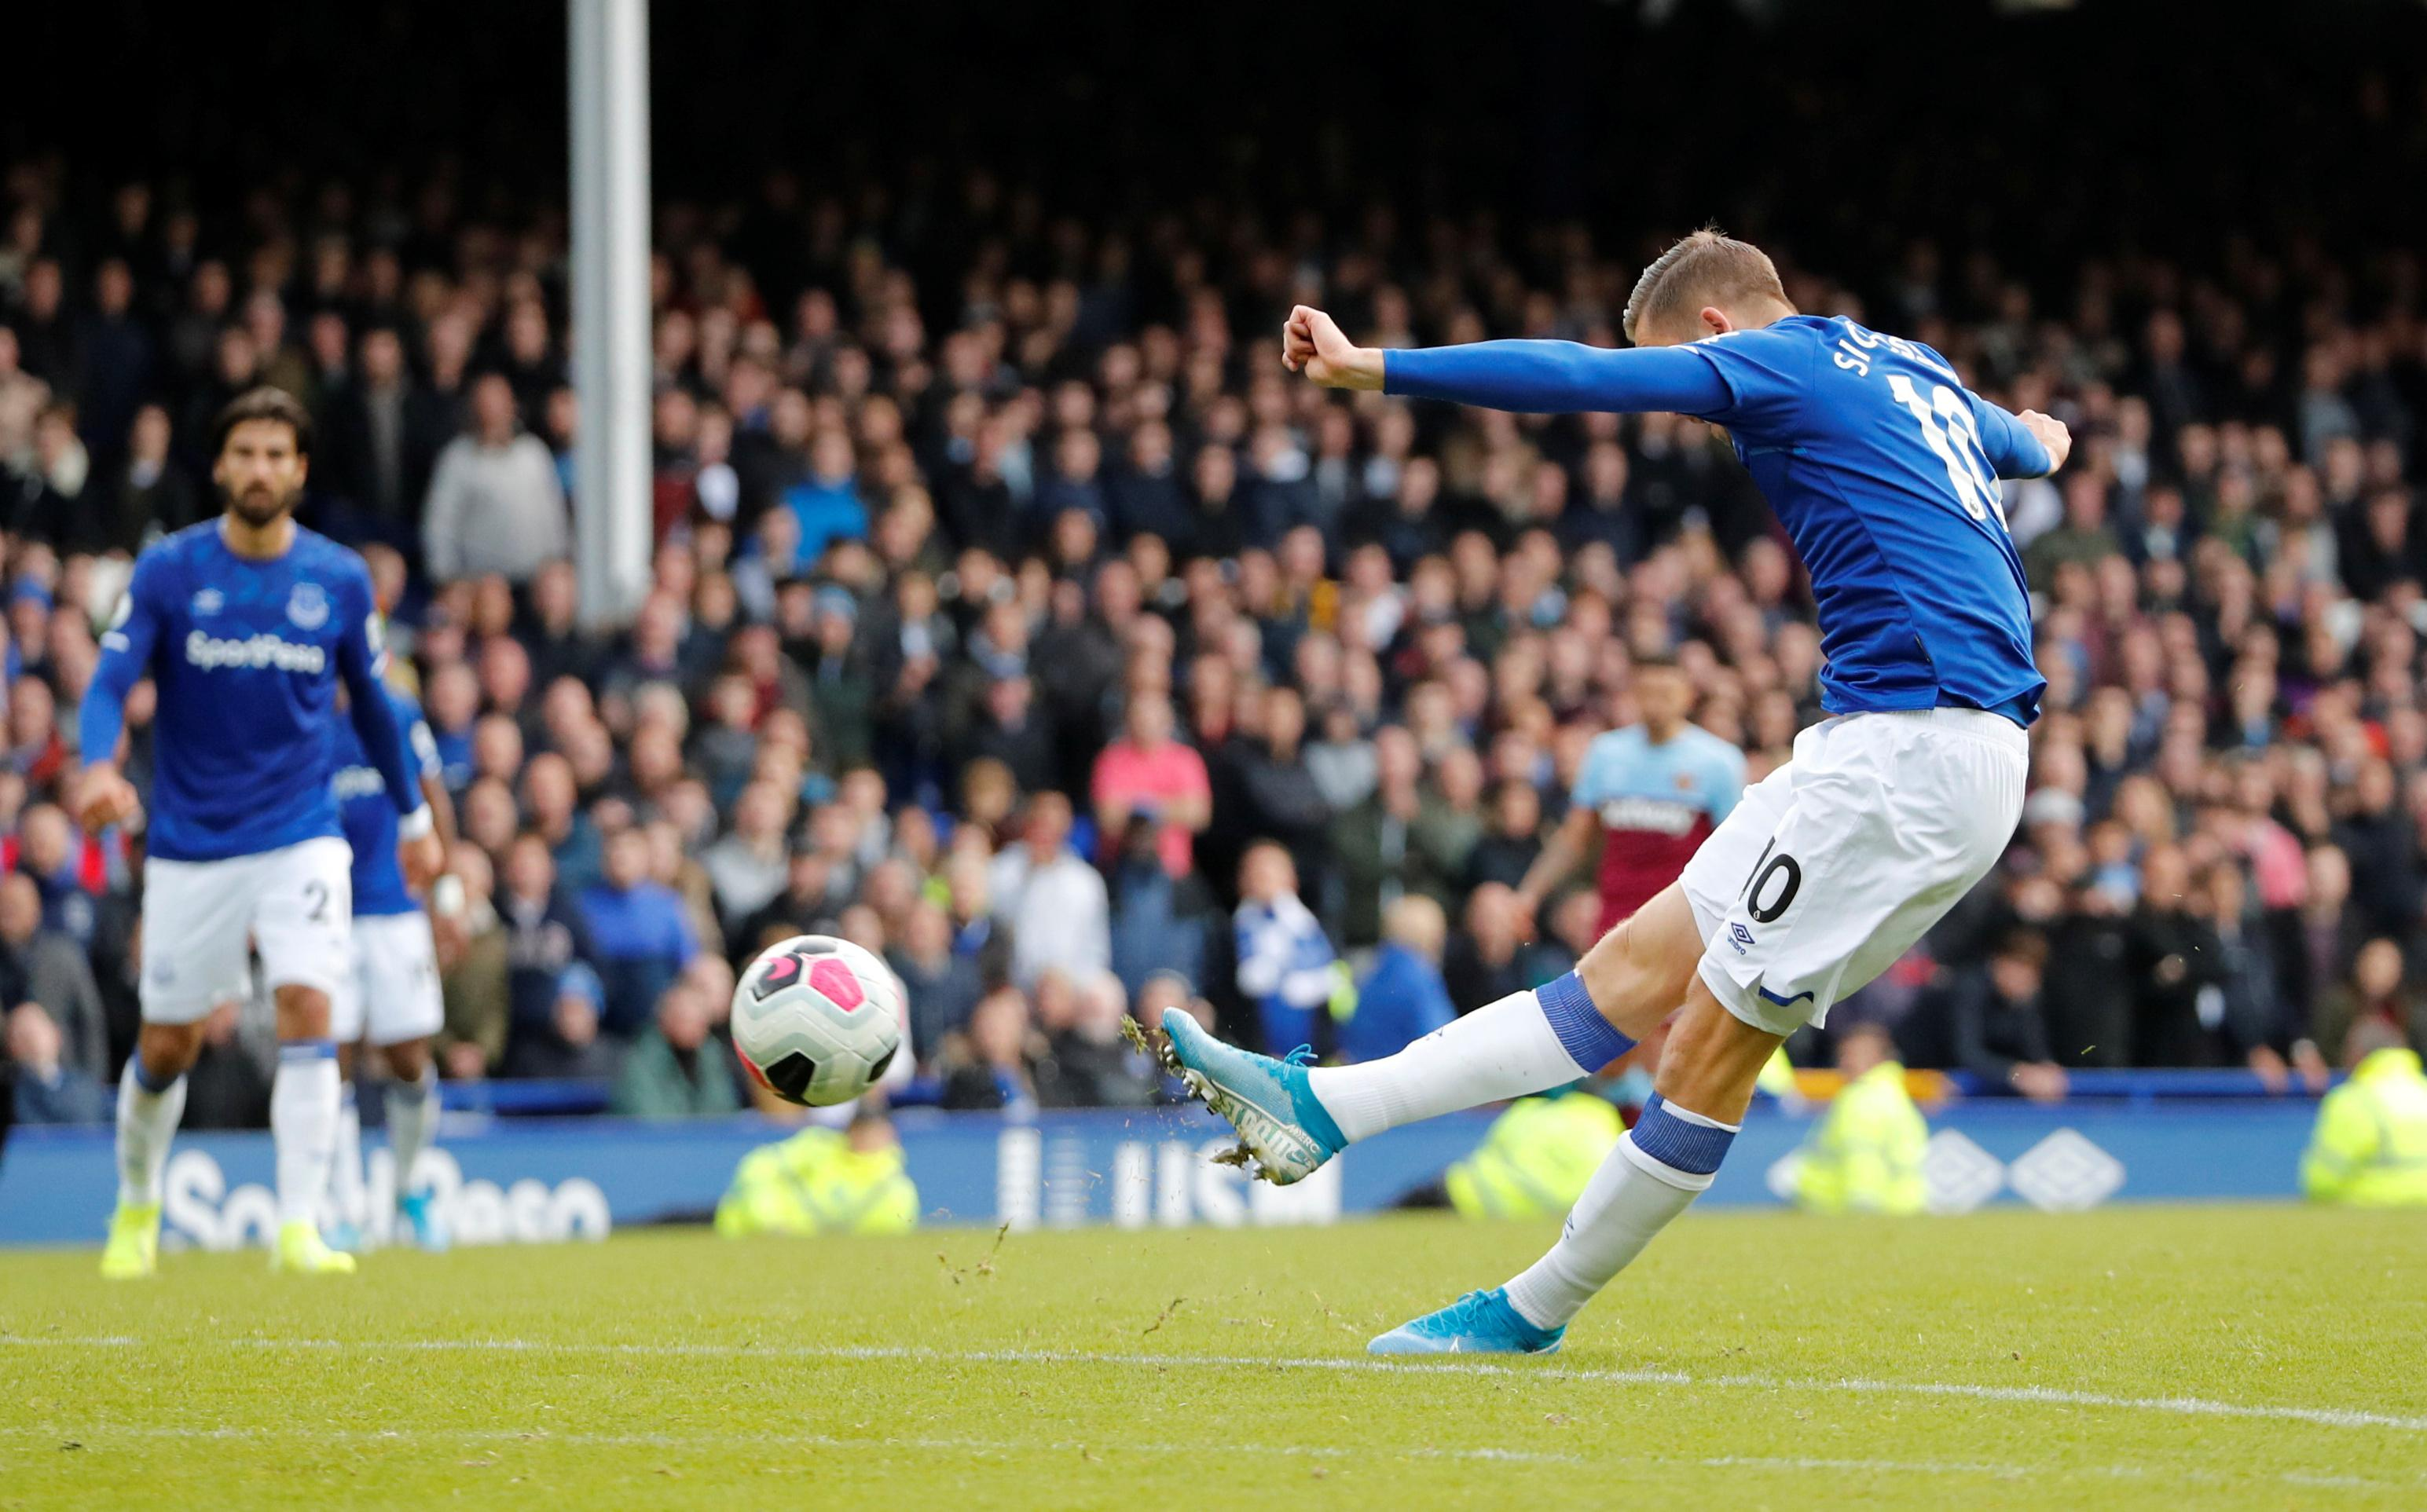 Resurgent Everton outclass West Ham to end losing run